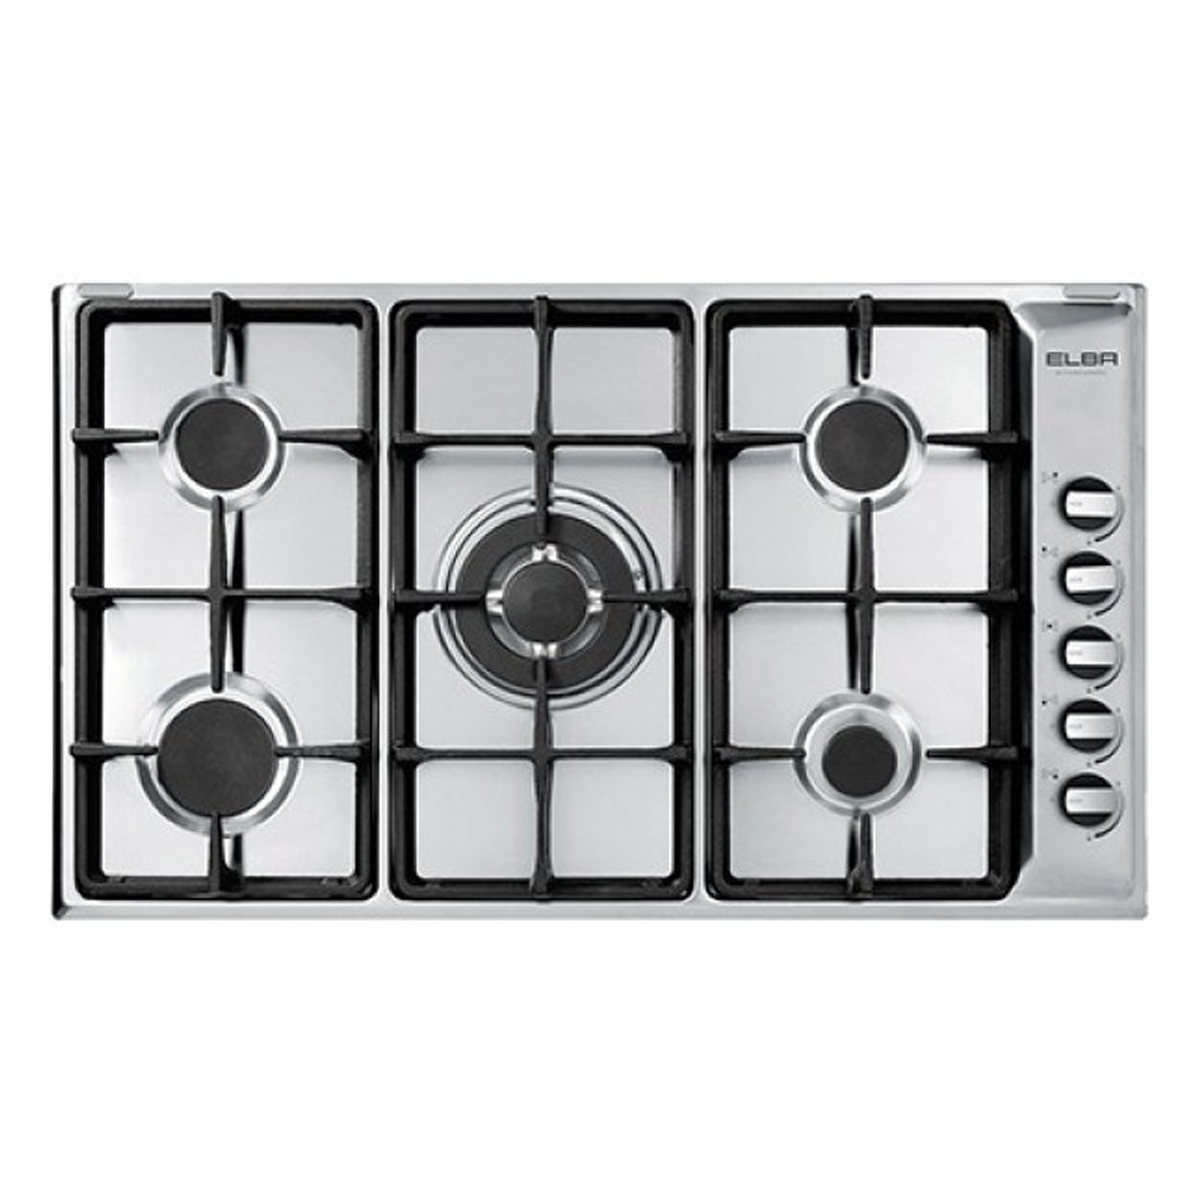 Elba CG905LWFCX2 900mm Stainless Steel Gas Cooktop